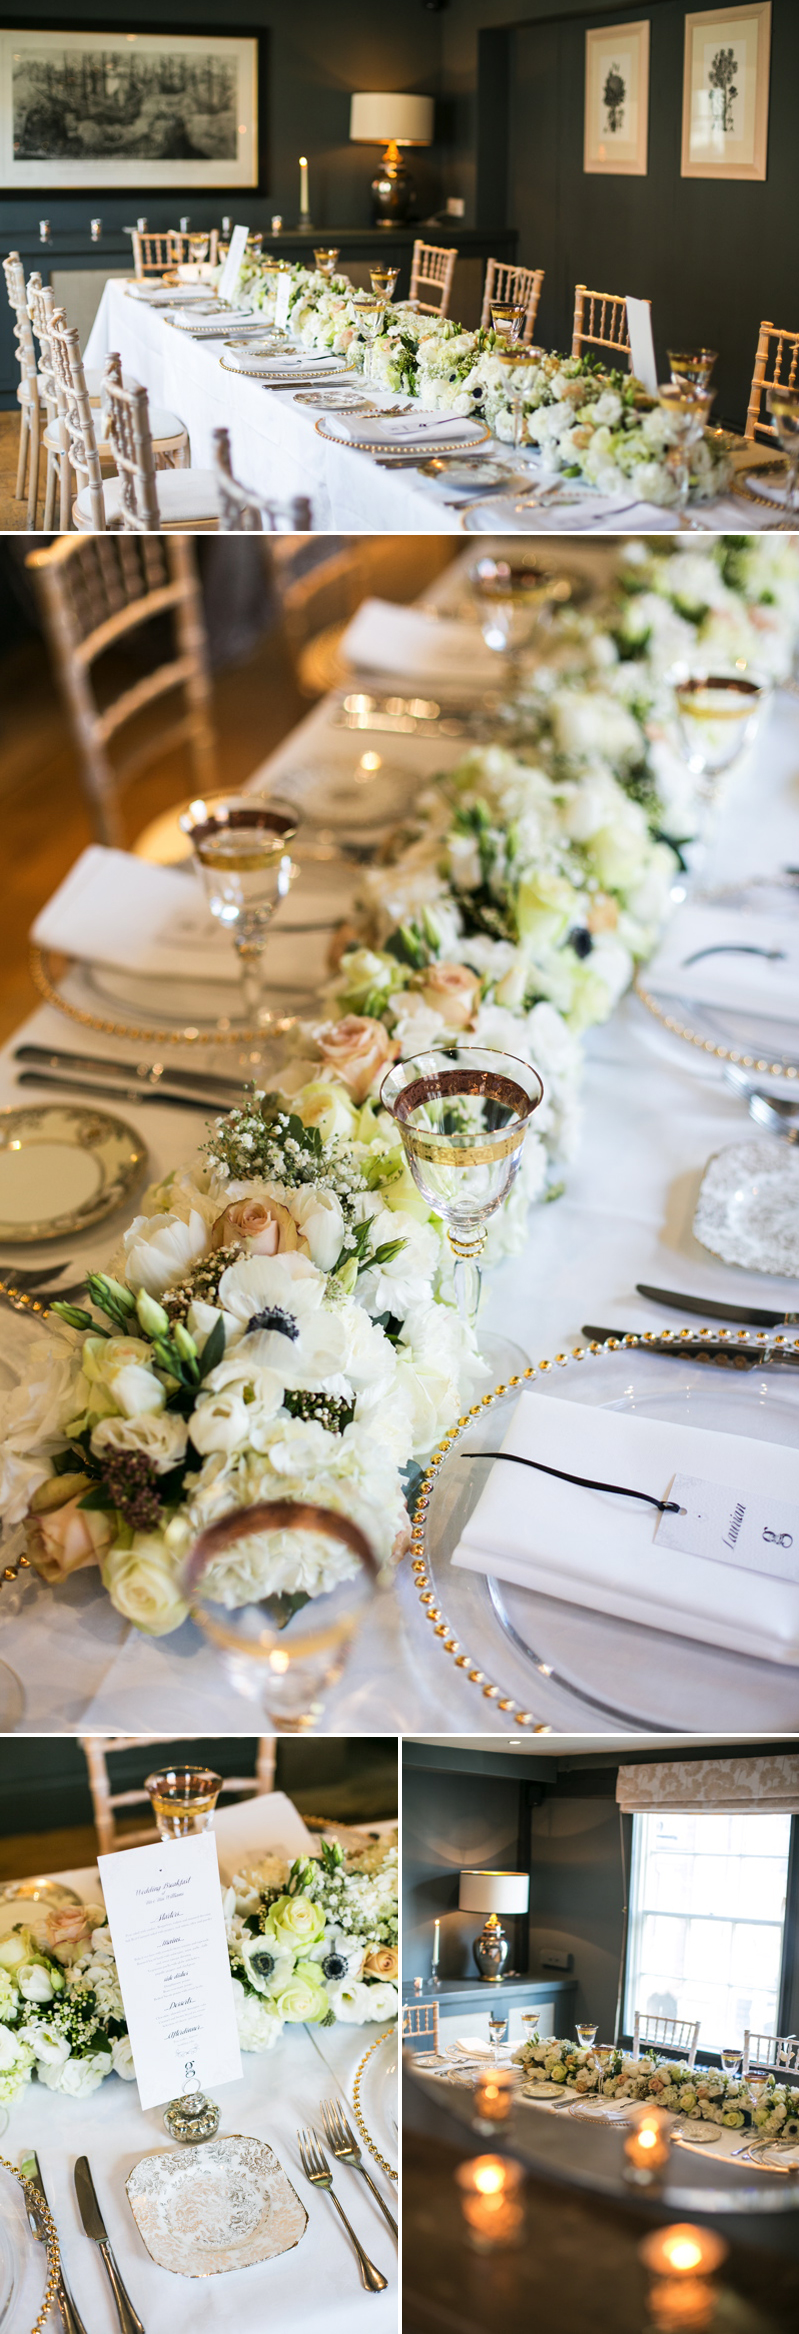 10-top-tips-for-the-perfect-wedding-breakfast-coco-wedding-venues-the-george-in-rye-anneli-marinovich-photography-2